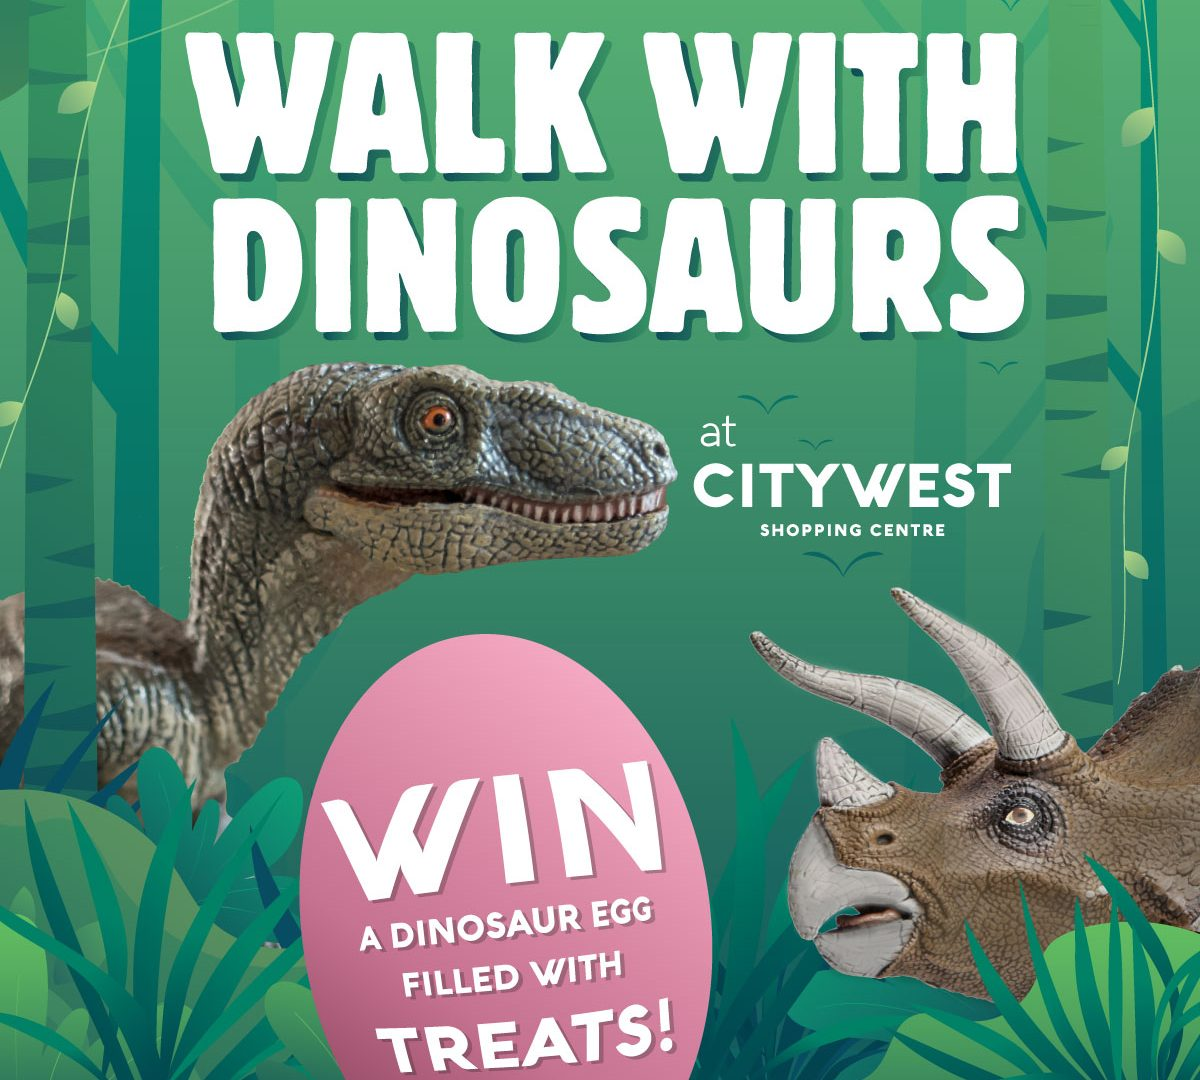 6312 Citywest Dino promo post 2